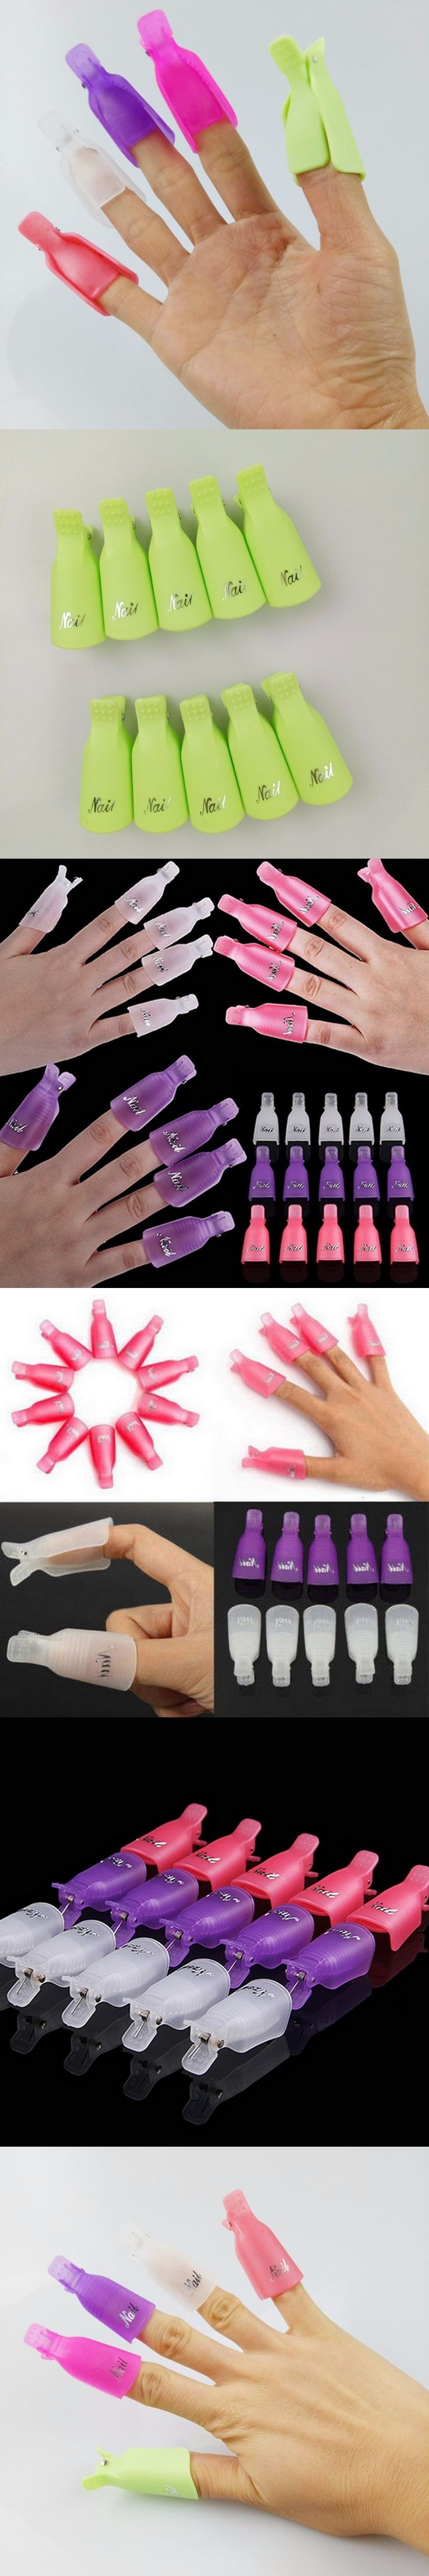 62 best Nails & Tools images on Pinterest